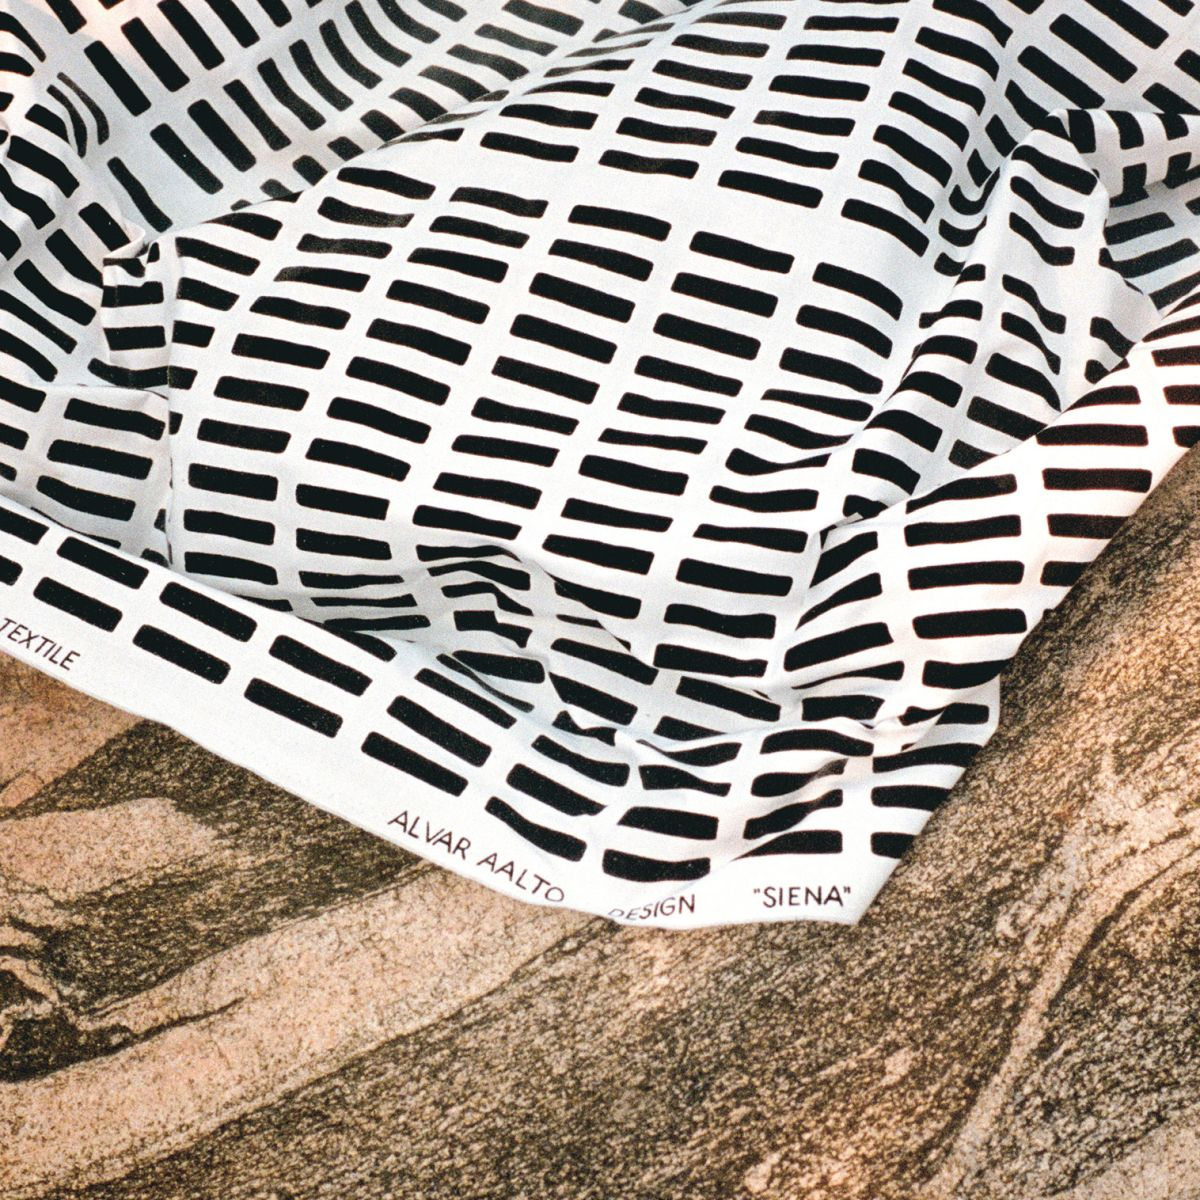 Siena_Fabric_White_Black_Web